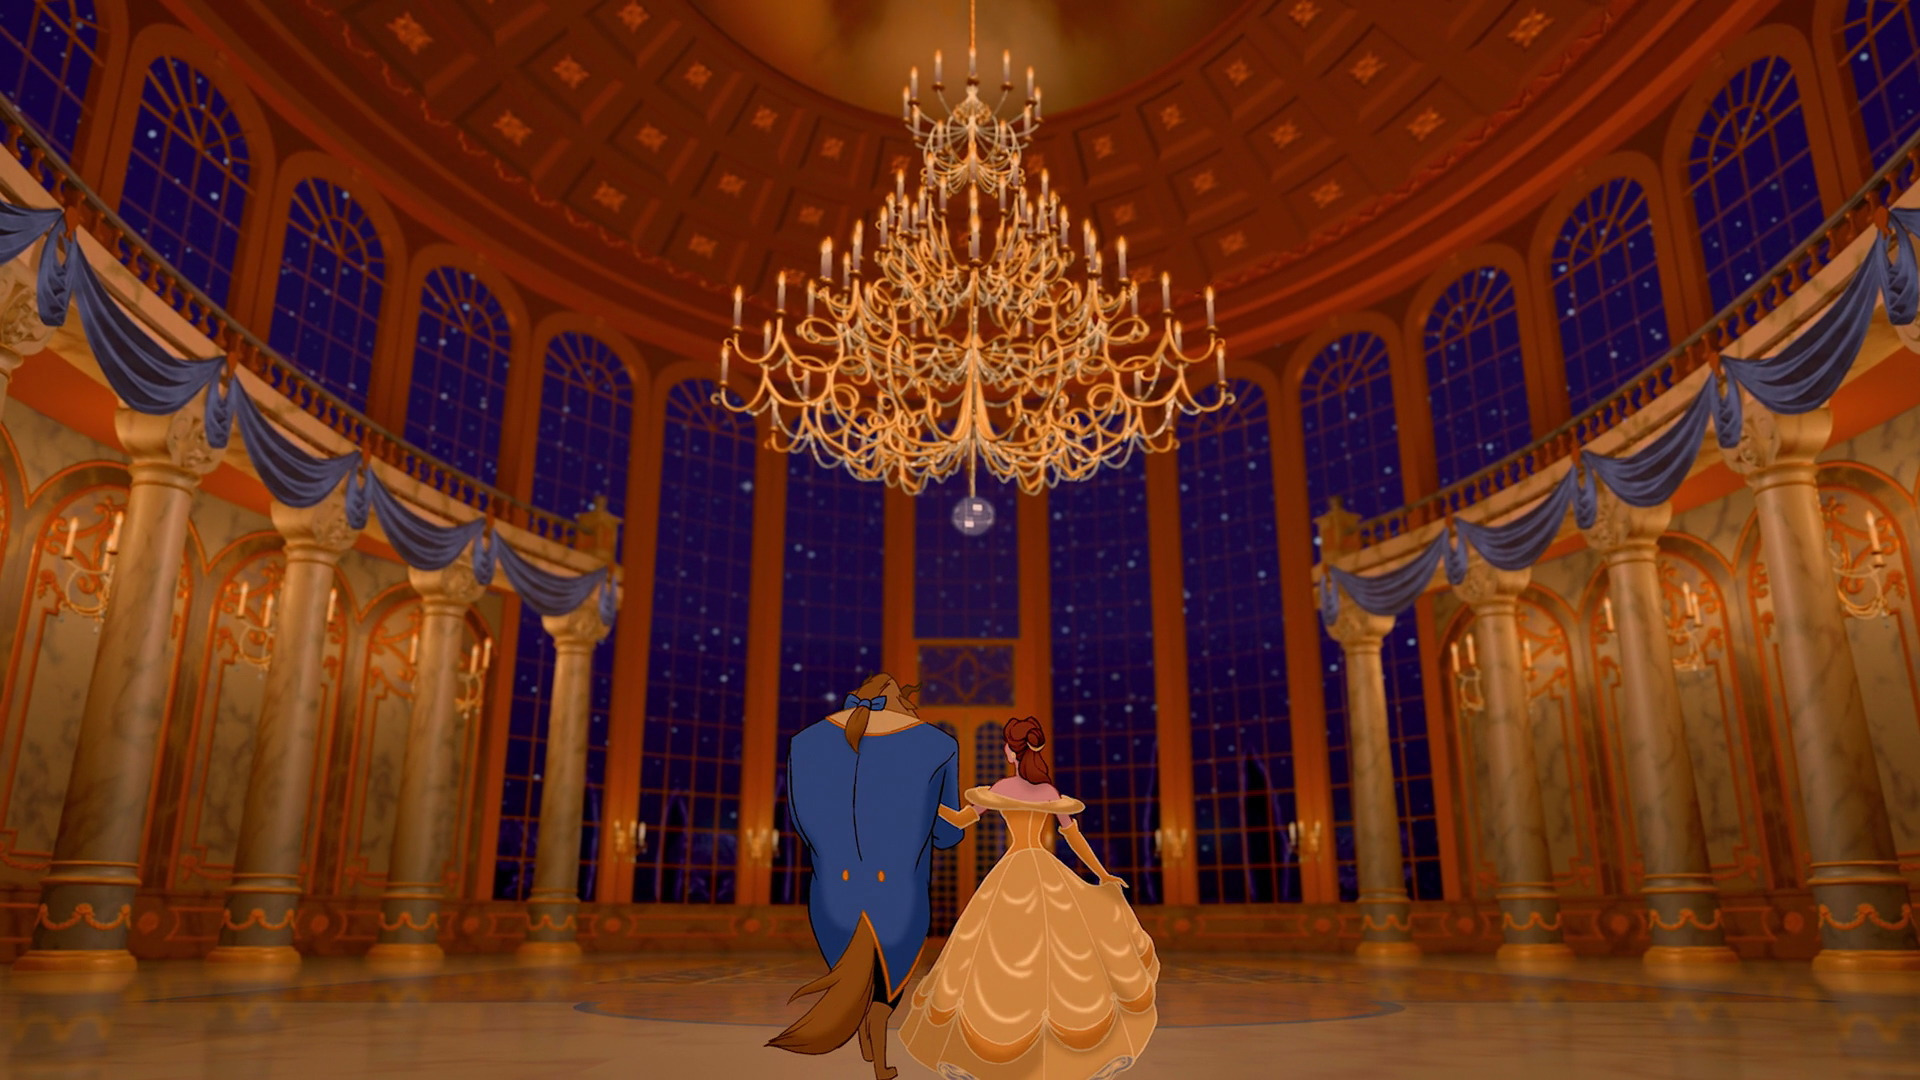 Beauty-and-the-beast-disneyscreencaps com-7353Disney Beauty And The Beast Ballroom